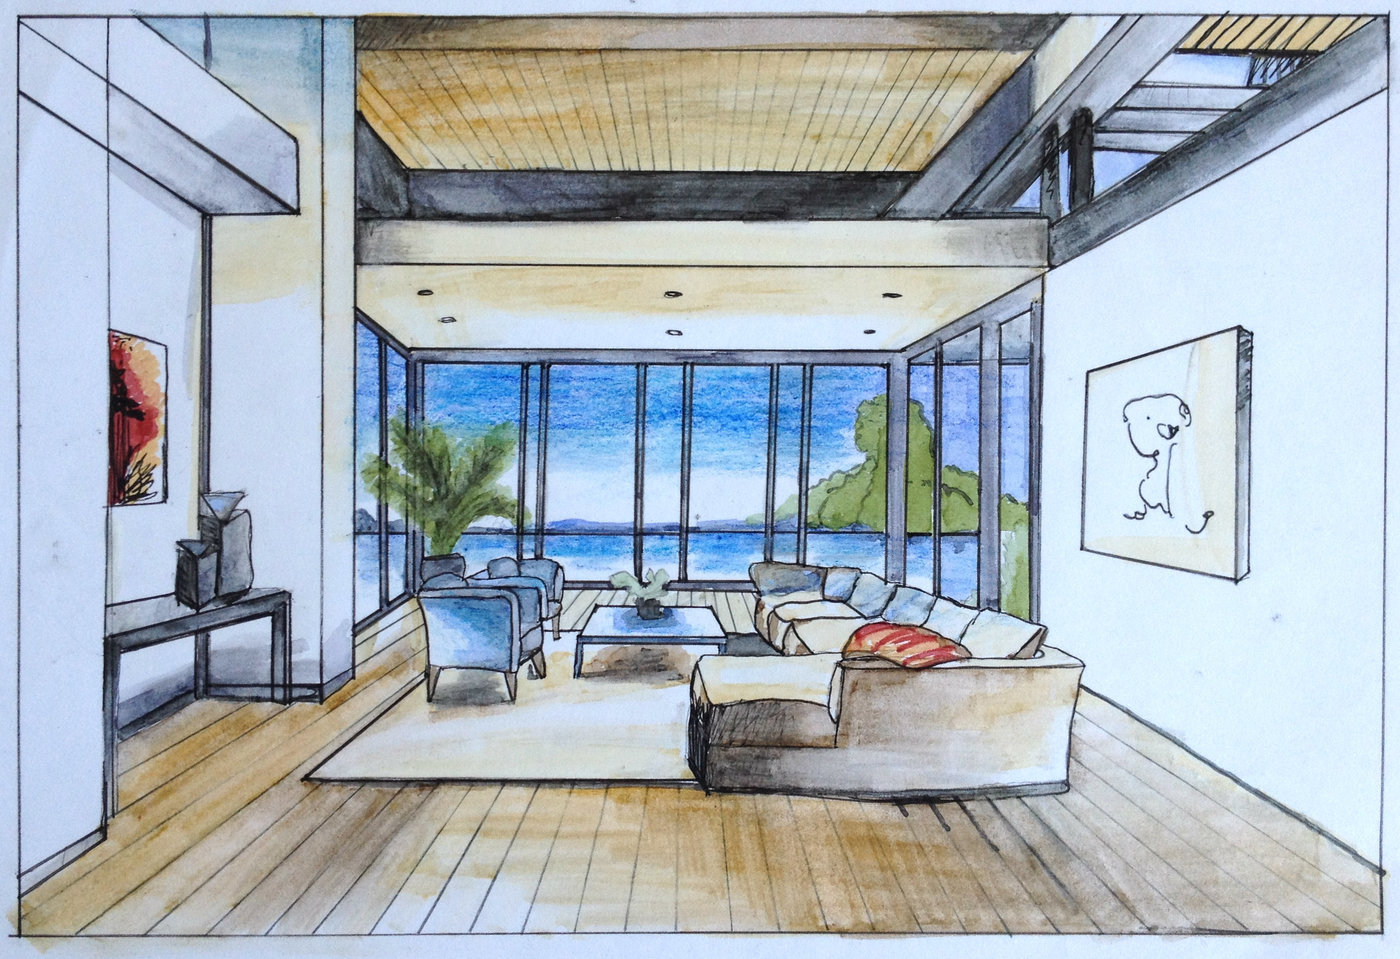 Hand Renderings By Hope Wortham At Coroflot Com